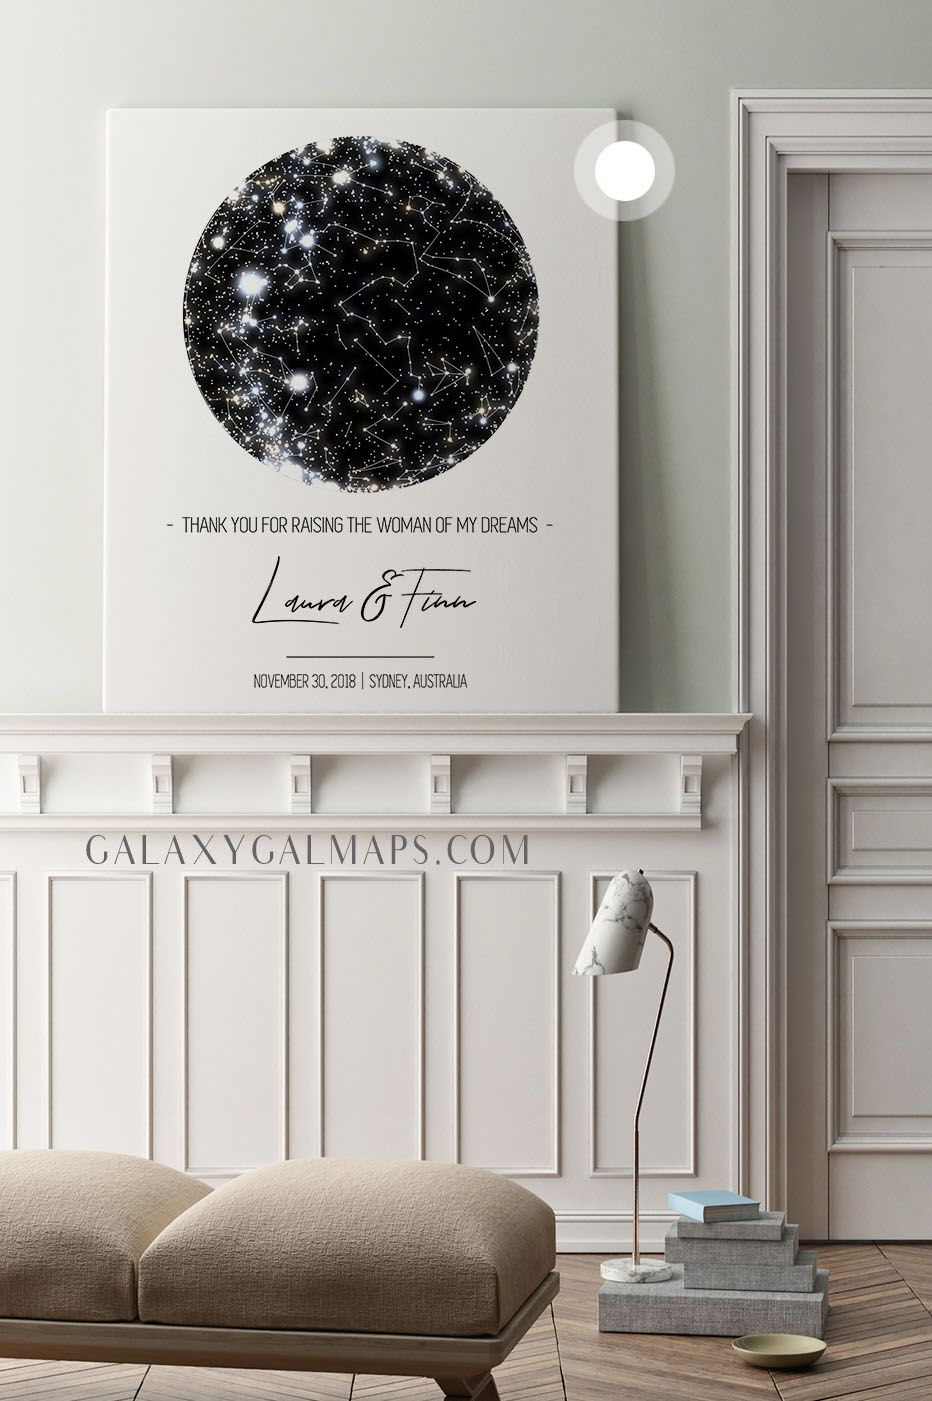 Create Your Star Map for That Special Date  - wall art décor, Star Map Night, Baby Name Sign, Star Sign Print, Aquarius Star Sign, Wood PhotoMemorial Plaque, Lunar Wall Art, Baby Nursery Art, Personalized Jewelry, 21st Birthday Gifts, #StarMapNight #BabyNameSign #StarSignPrint #AquariusStarSign #WoodPhotoMemorialPlaque #LunarWallArt #BabyNurseryArt #PersonalizedJewelry #21stBirthdayGifts #21stbirthdaysigns